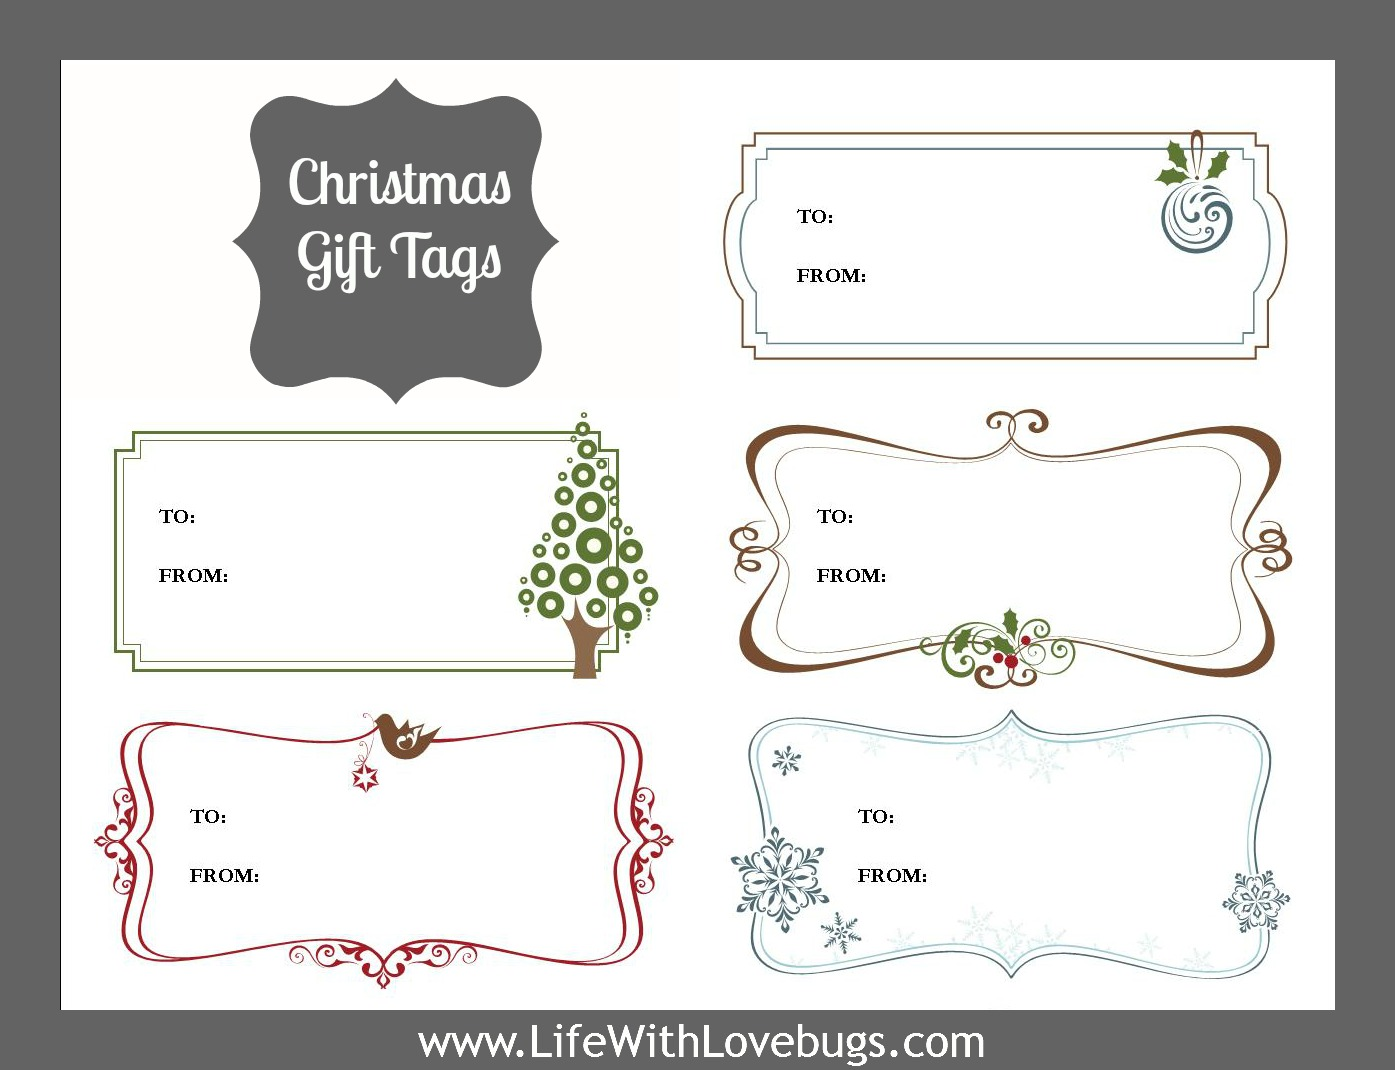 graphic relating to Christmas Tags Printable titled Xmas Present Tags Printable - Daily life With Lovebugs